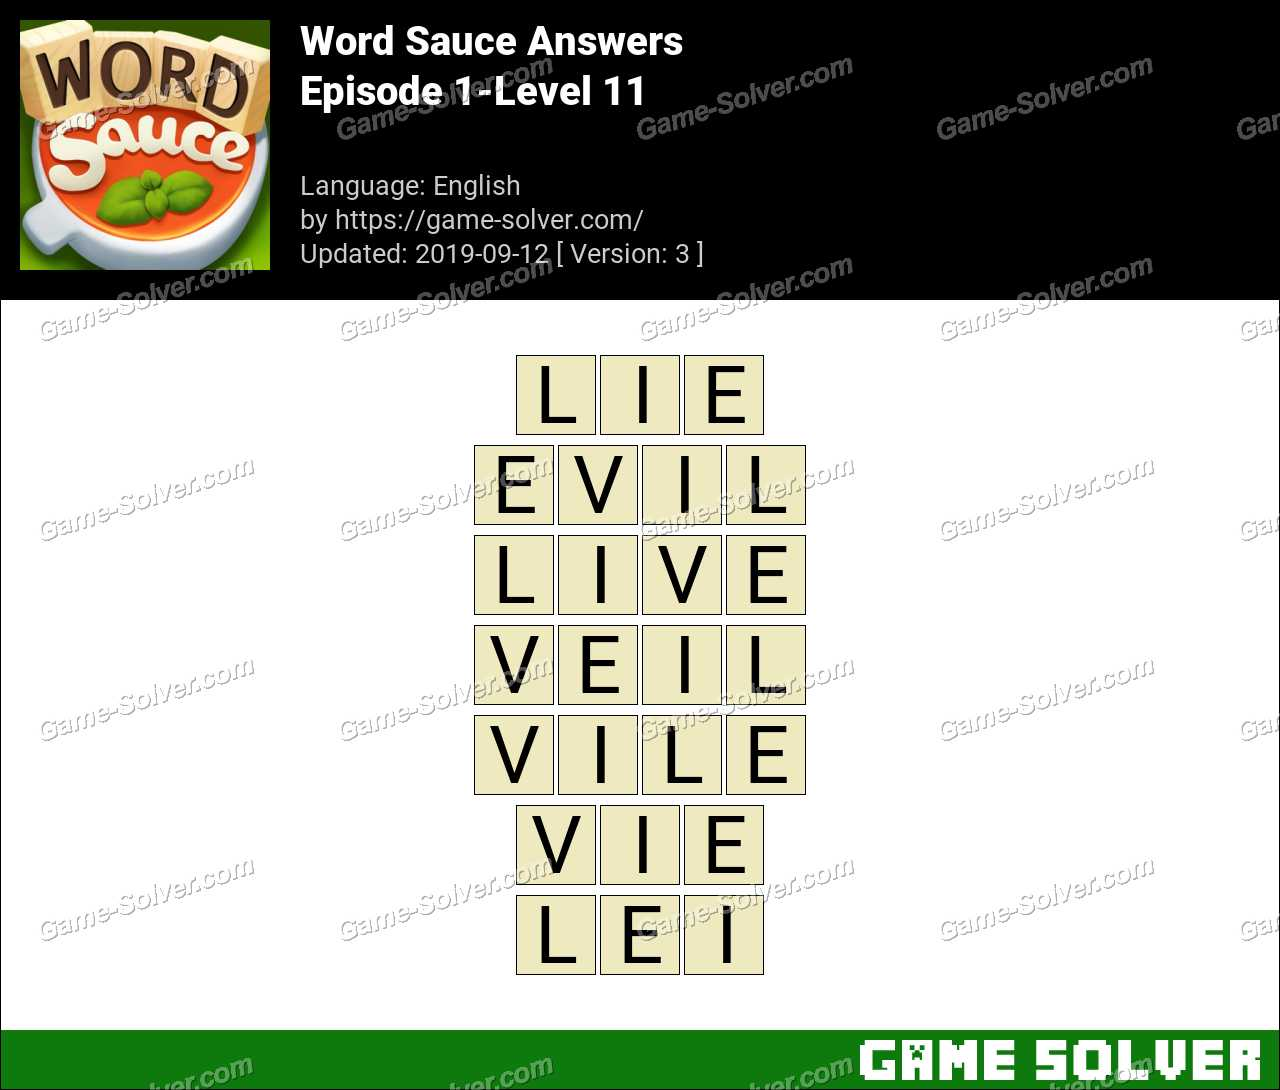 Word Sauce Episode 1-Level 11 Answers